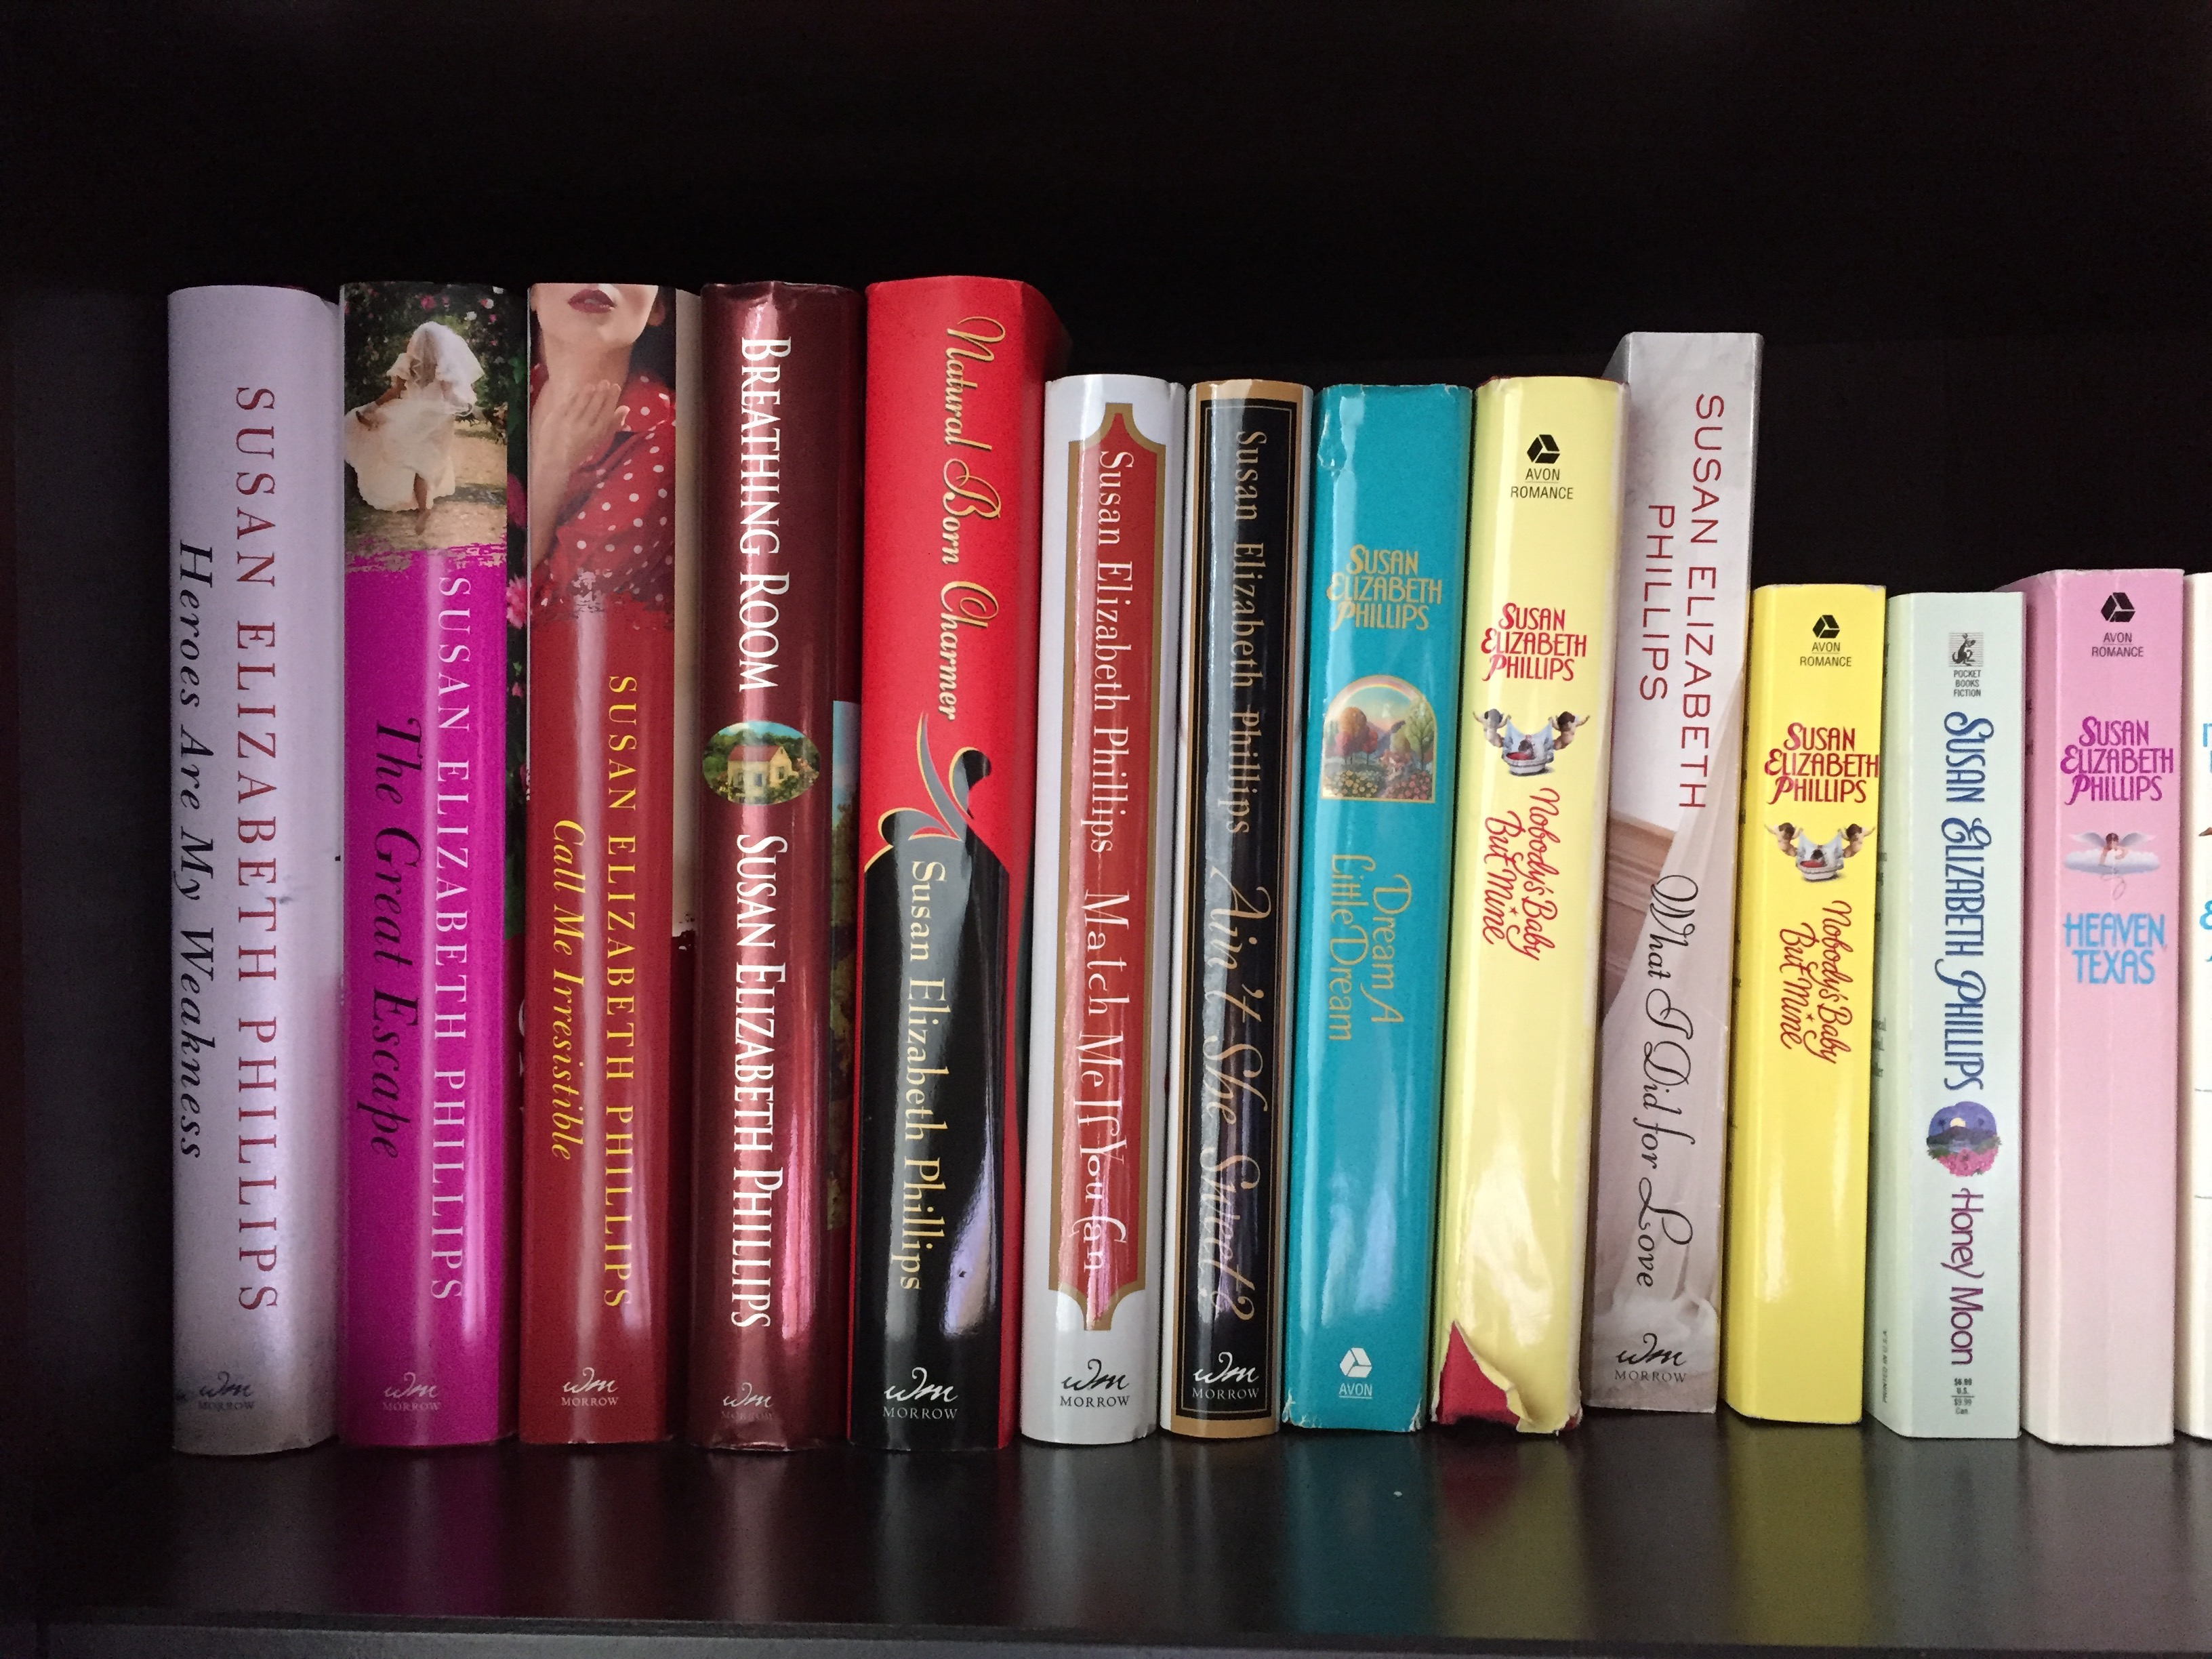 The Susan Elizabeth Phillips Book Collection Hard Cover on the book shelf - favourite authors